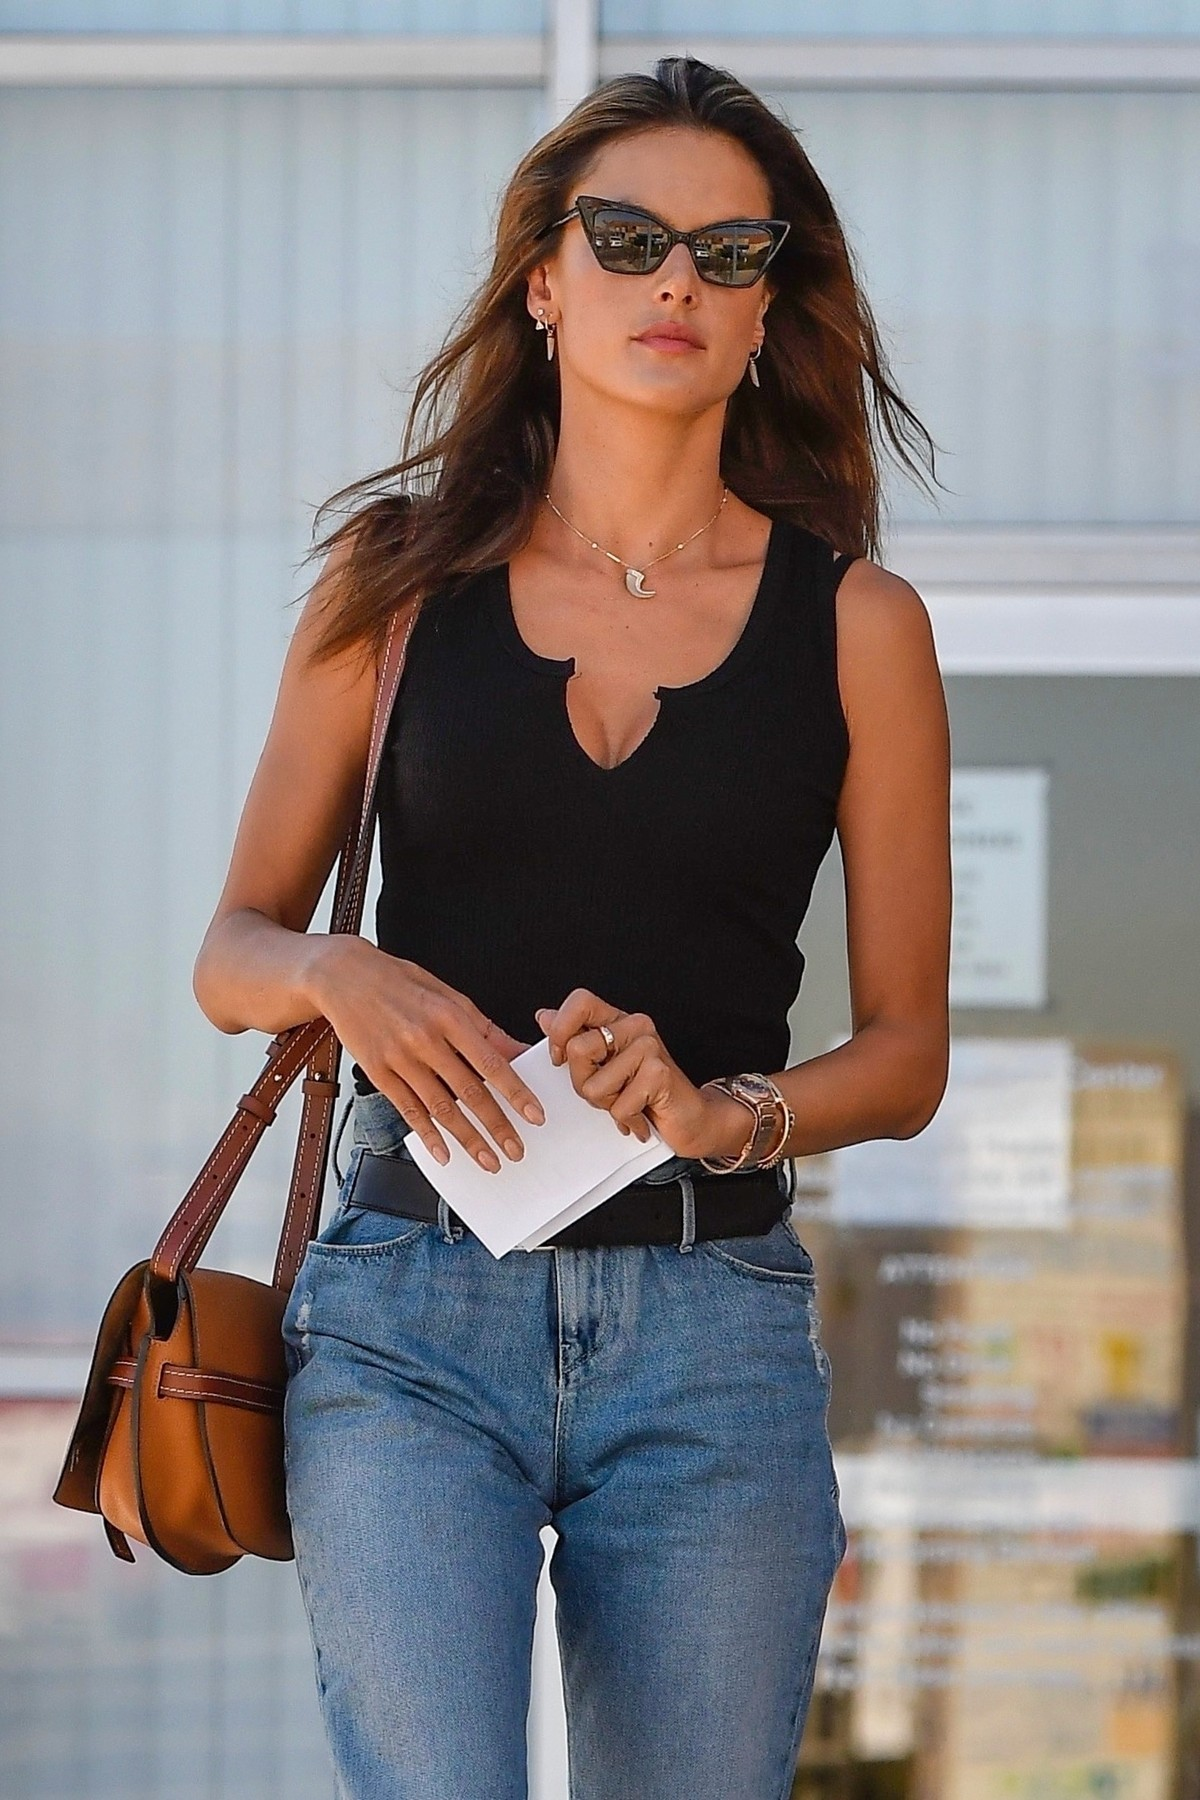 Alessandra Ambrosio in Black Top and Blue Jeans out in Los Angeles 2019/11/18 19